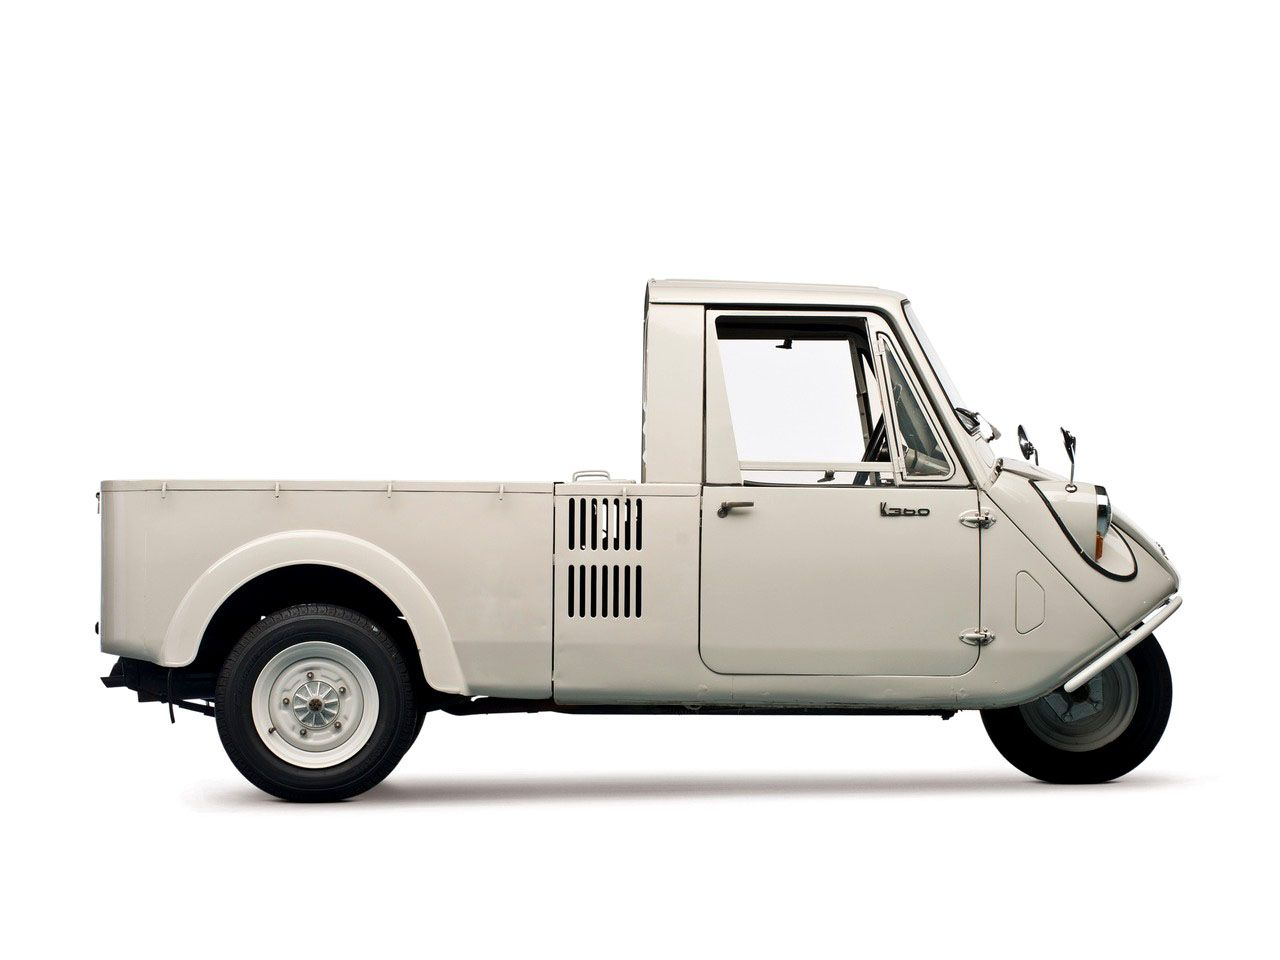 MAZDA K360 | Different, Quirky, Weird, and Odd Vehicles | Pinterest ...